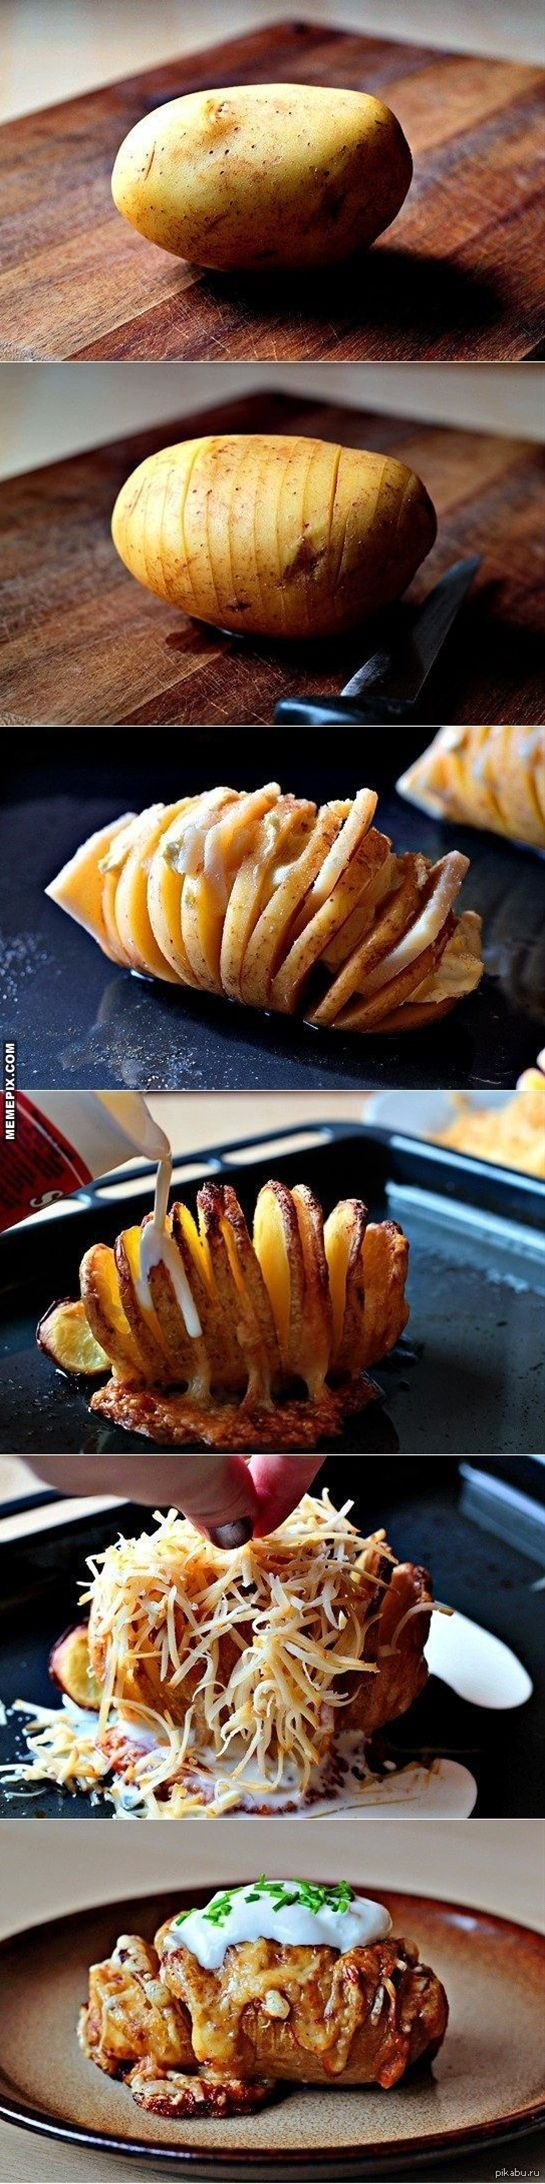 The perfect baked potato. use a spoon or knife beside potato to keep you from cutting all the way through -put in baking dish and fan out slices -sprinkle with salt and drizzle with butter, sprinkle with herbs -bake at 425 for about 50 minutes -remove from oven and sprinkle with cheeses (whatever you want) -bake for another 10-15 minutes until cheese are melted and potatoes are soft inside